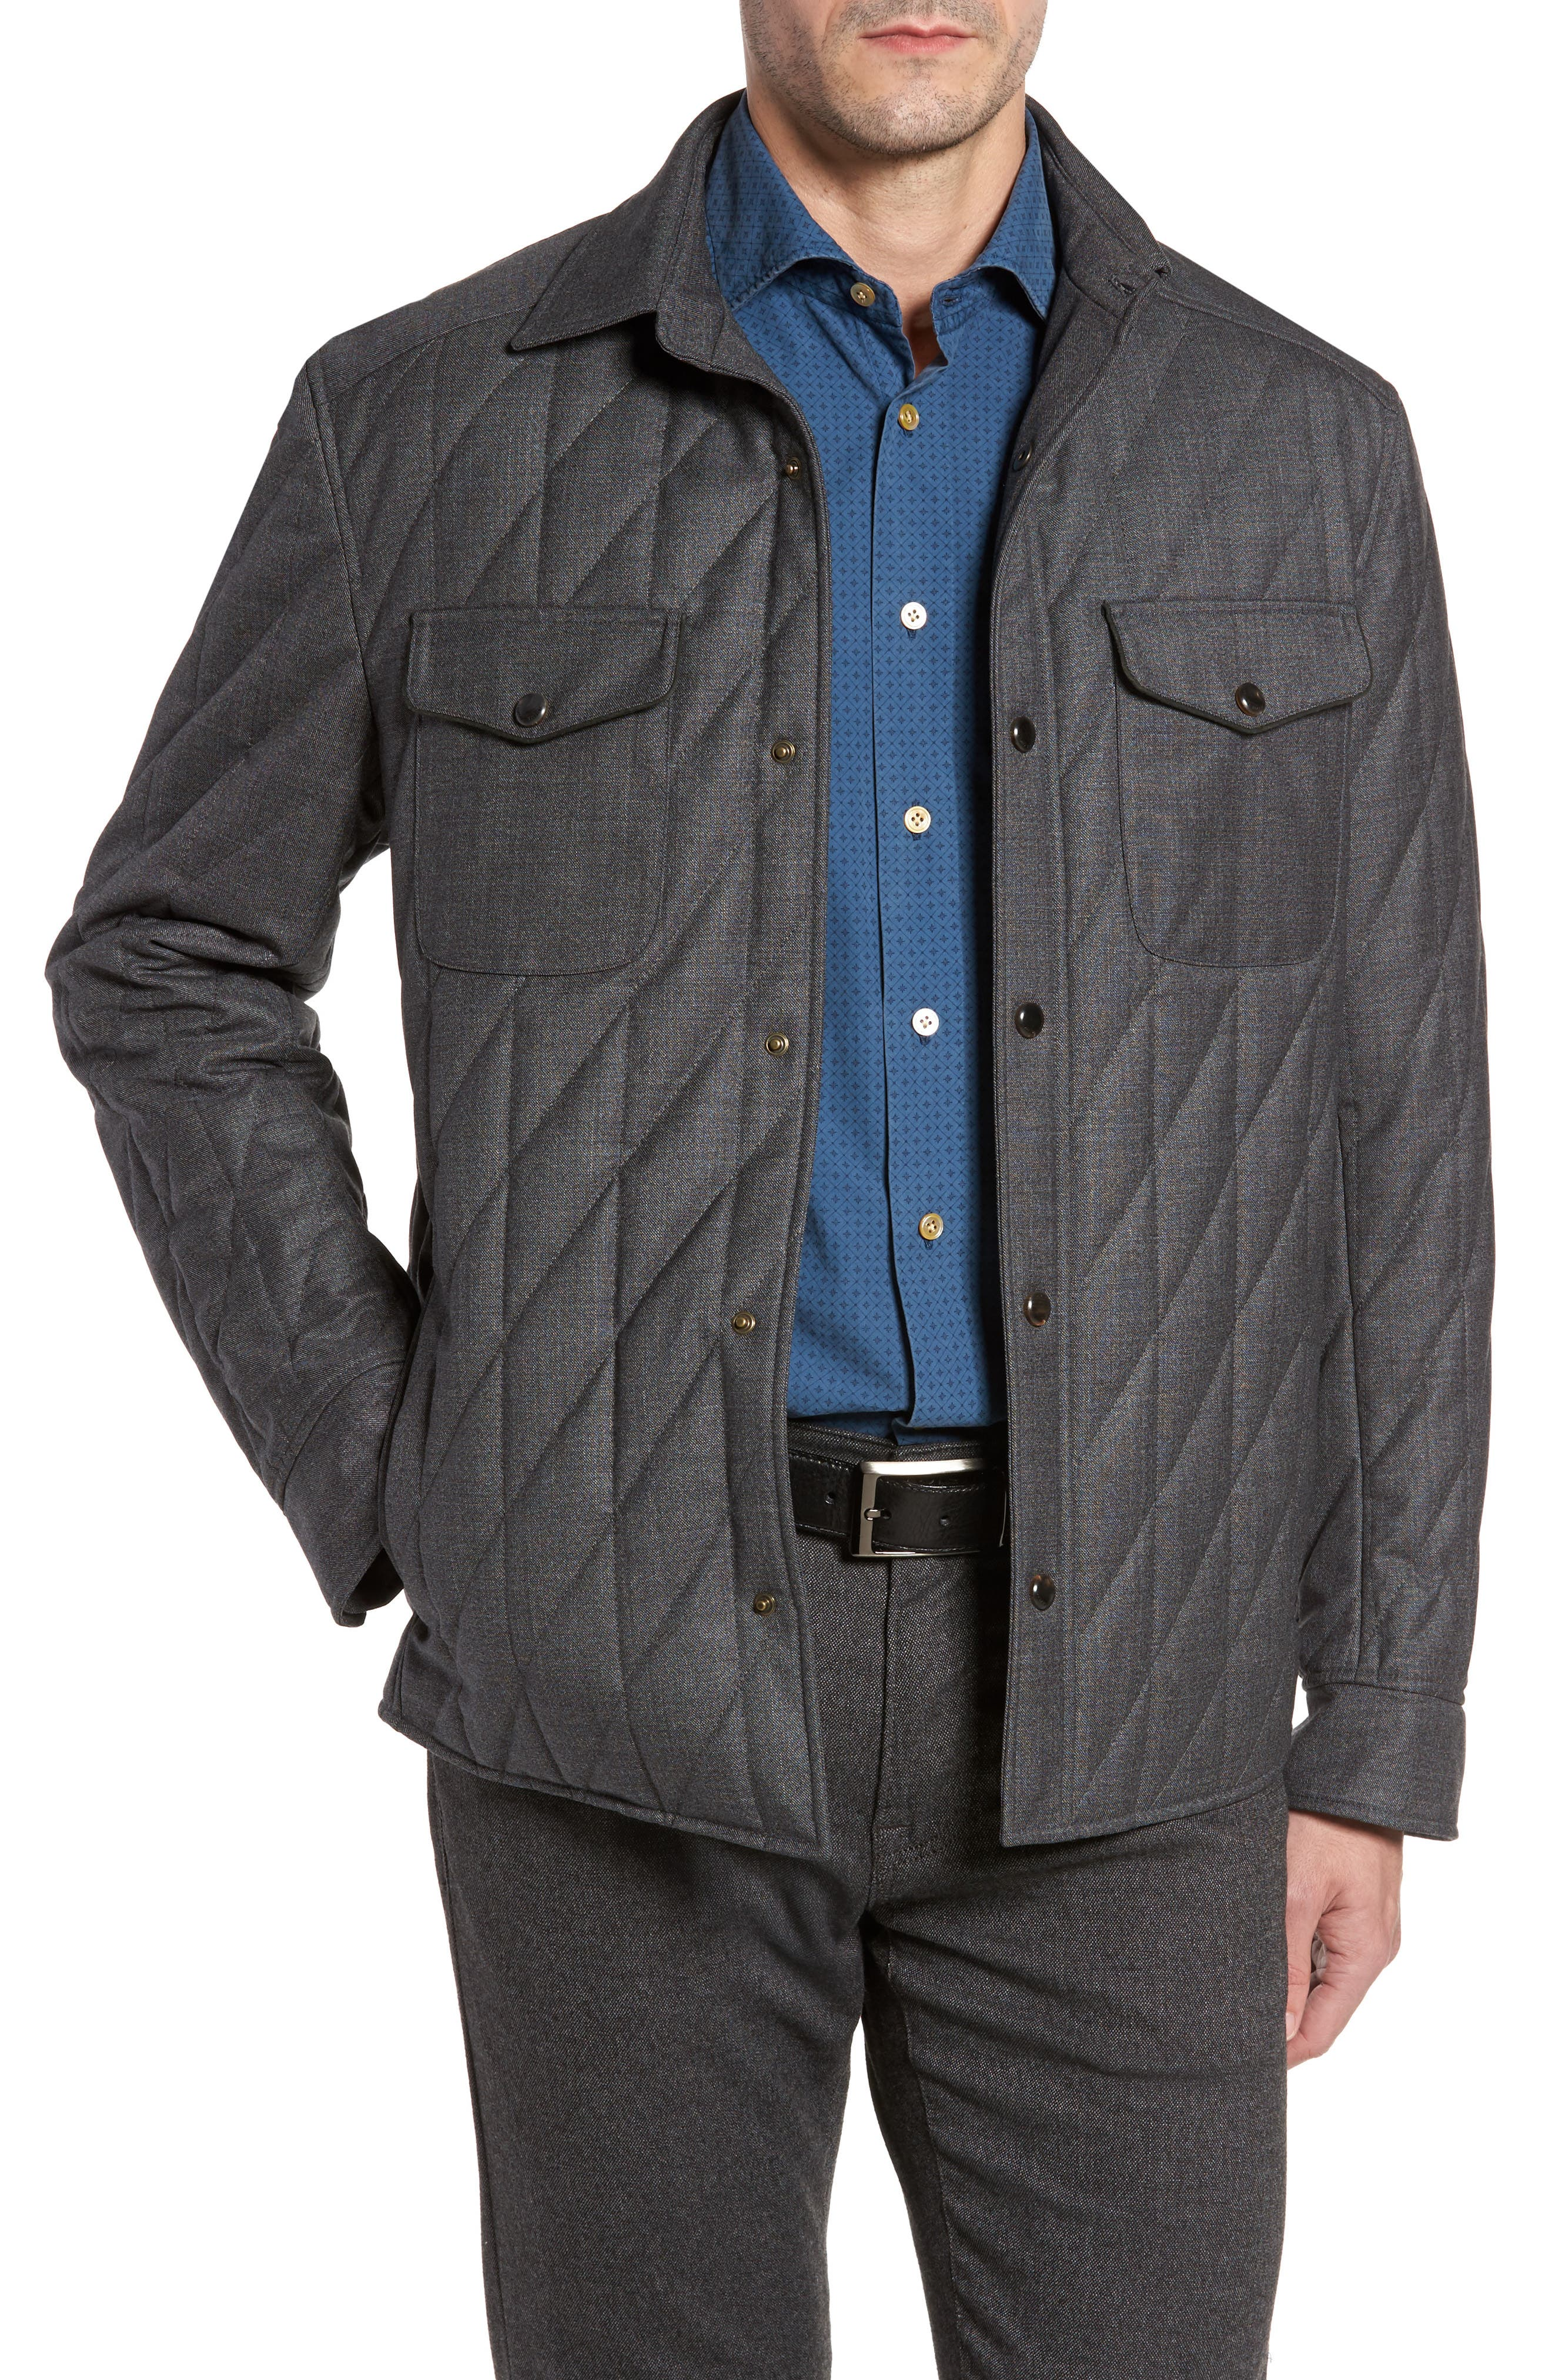 Alternate Image 1 Selected - Luciano Barbera Classic Fit Quilted Wool Blend Shirt Jacket